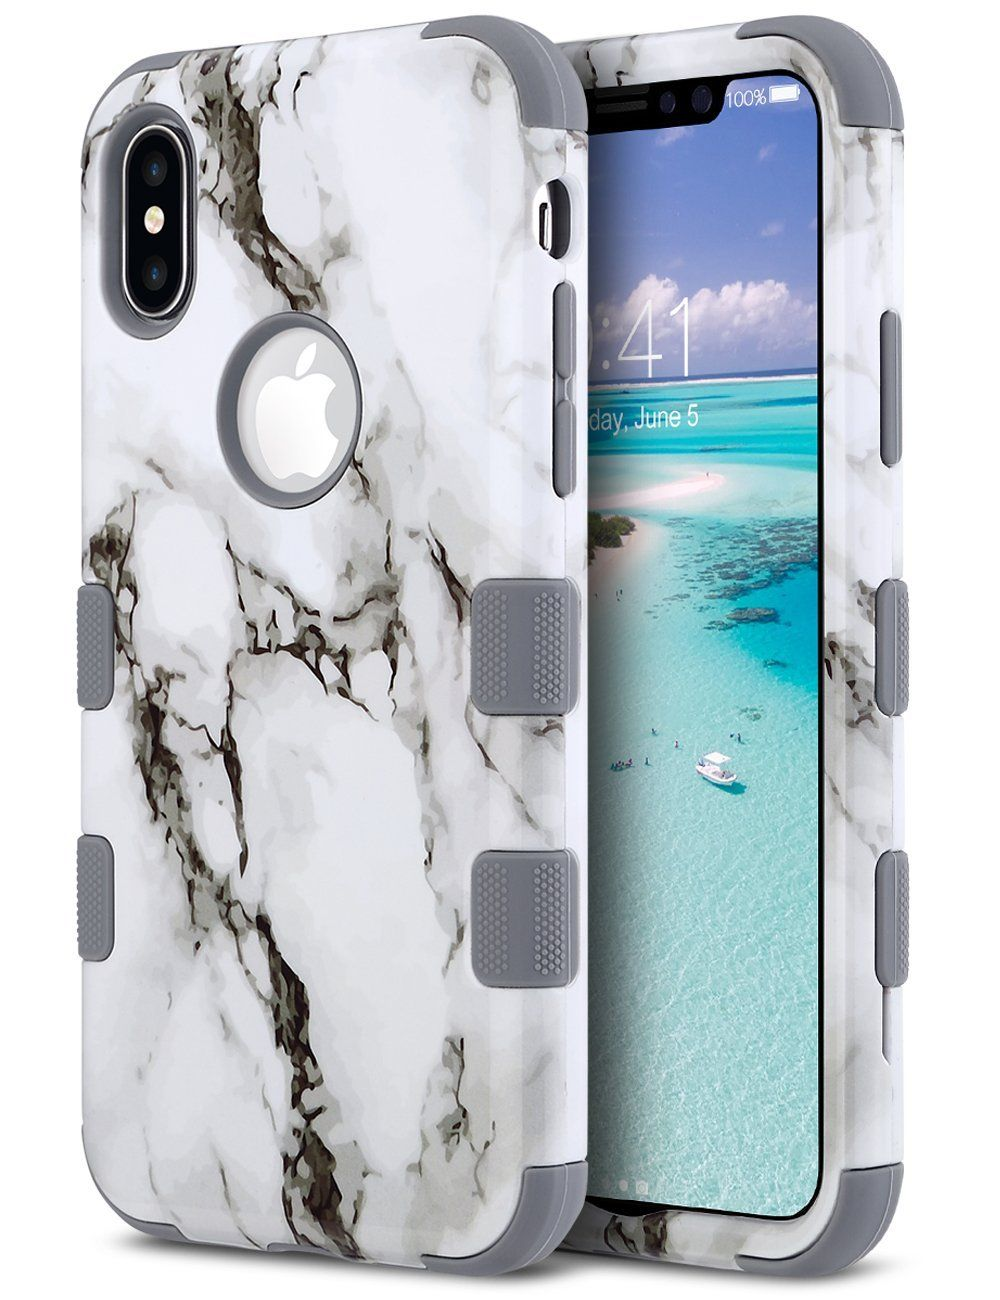 iPhone X Case 6905b39314